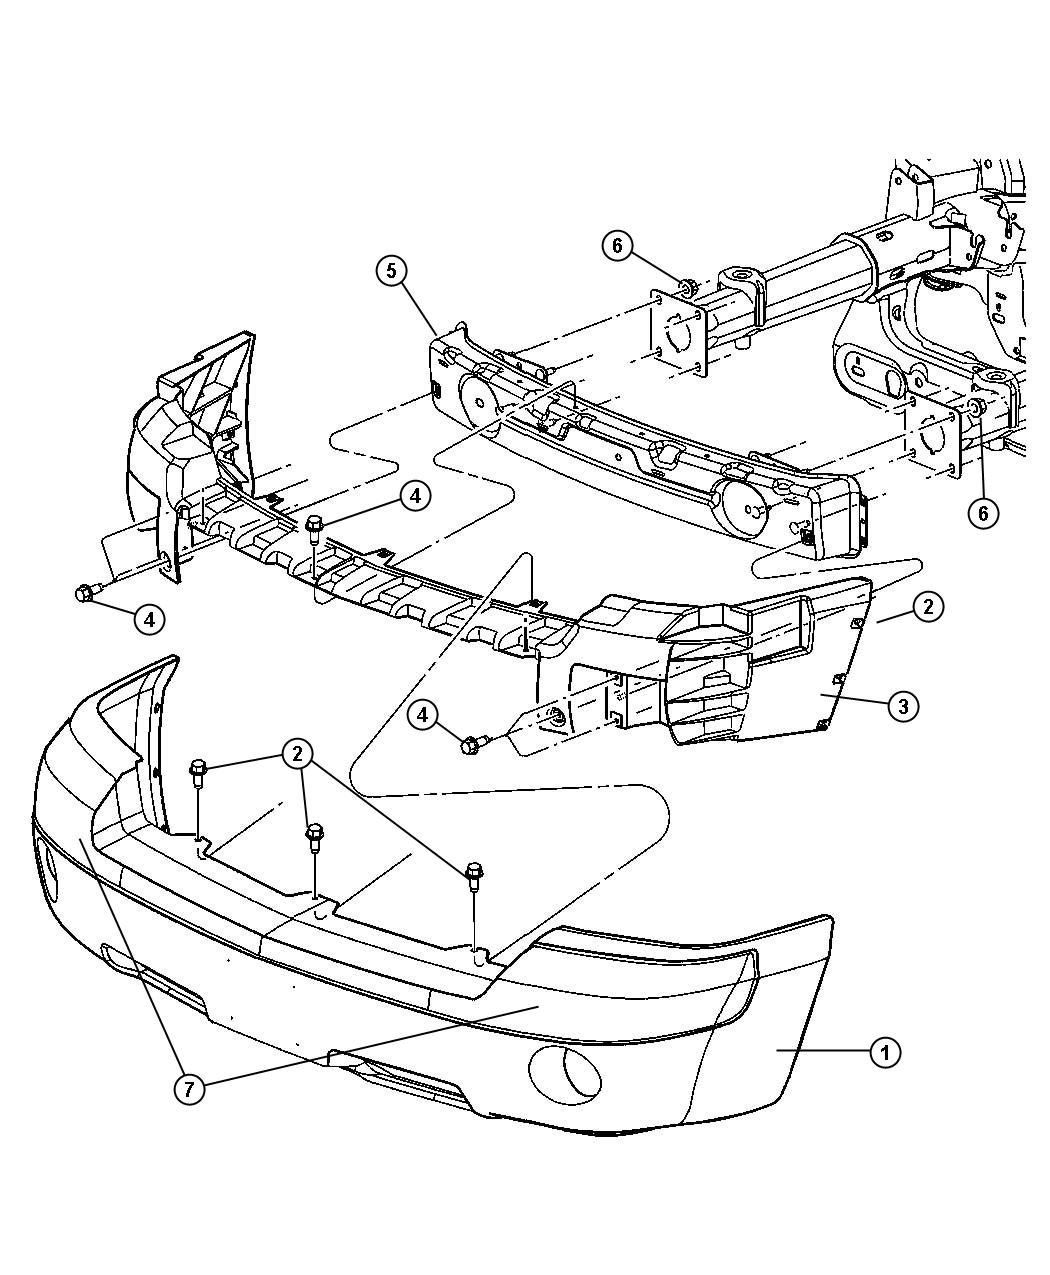 chrysler pacifica front bumper diagram